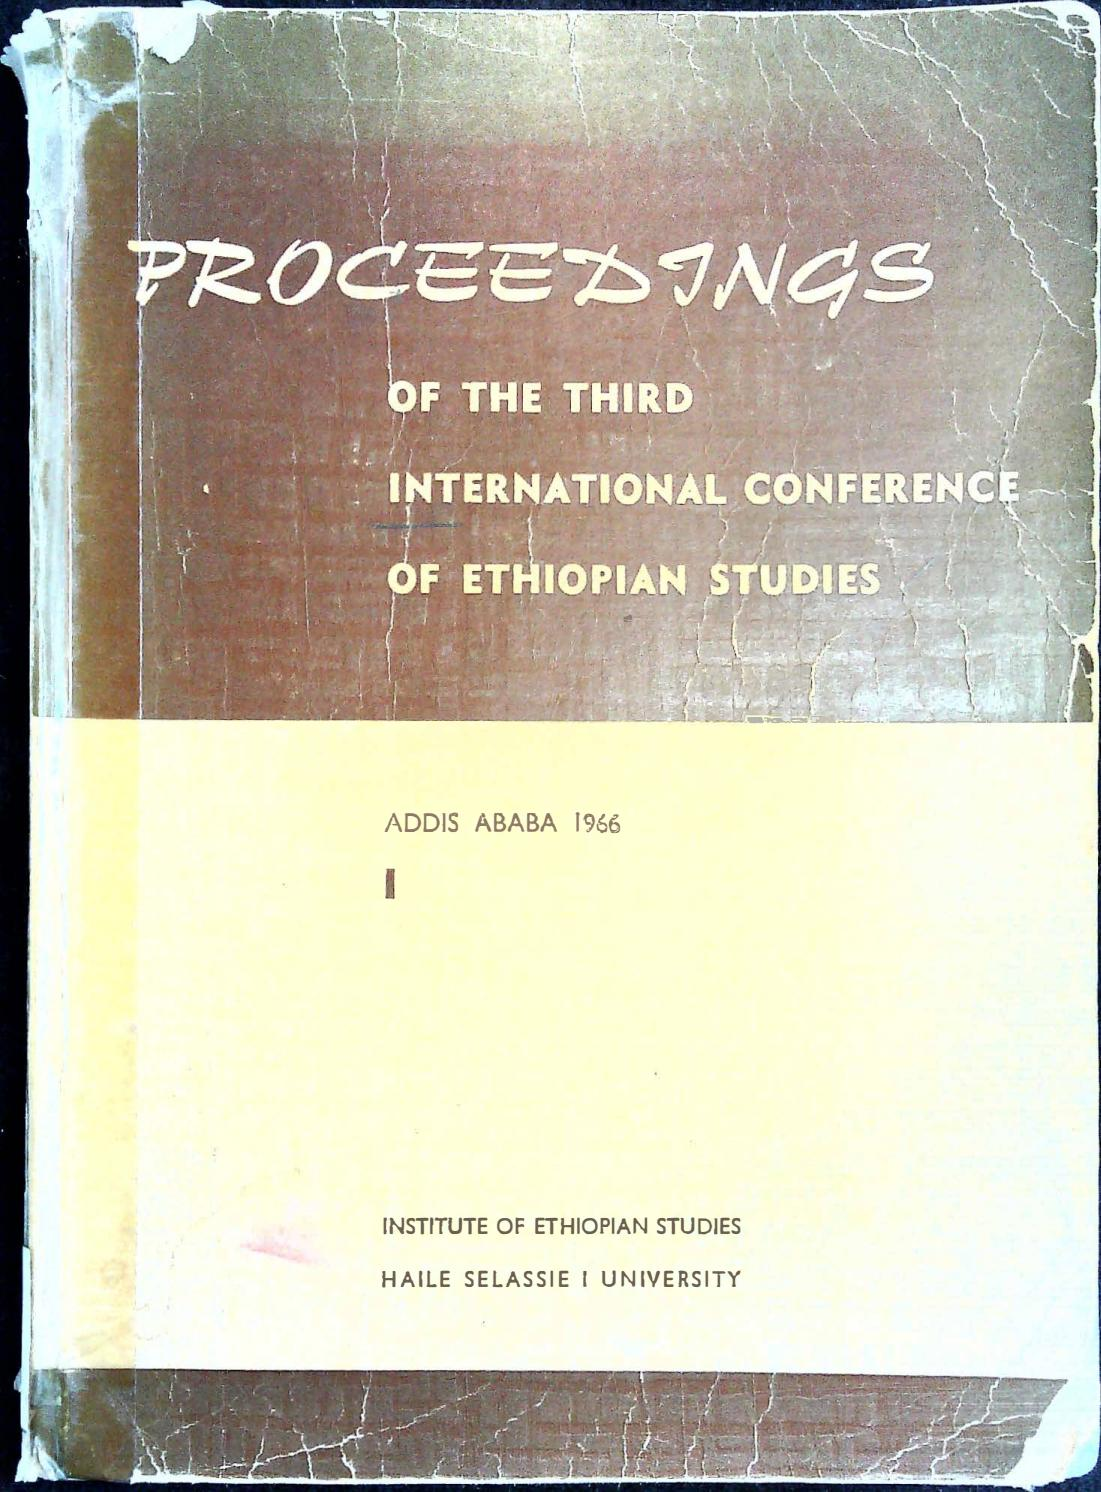 Proceedings of the Third International Conference of